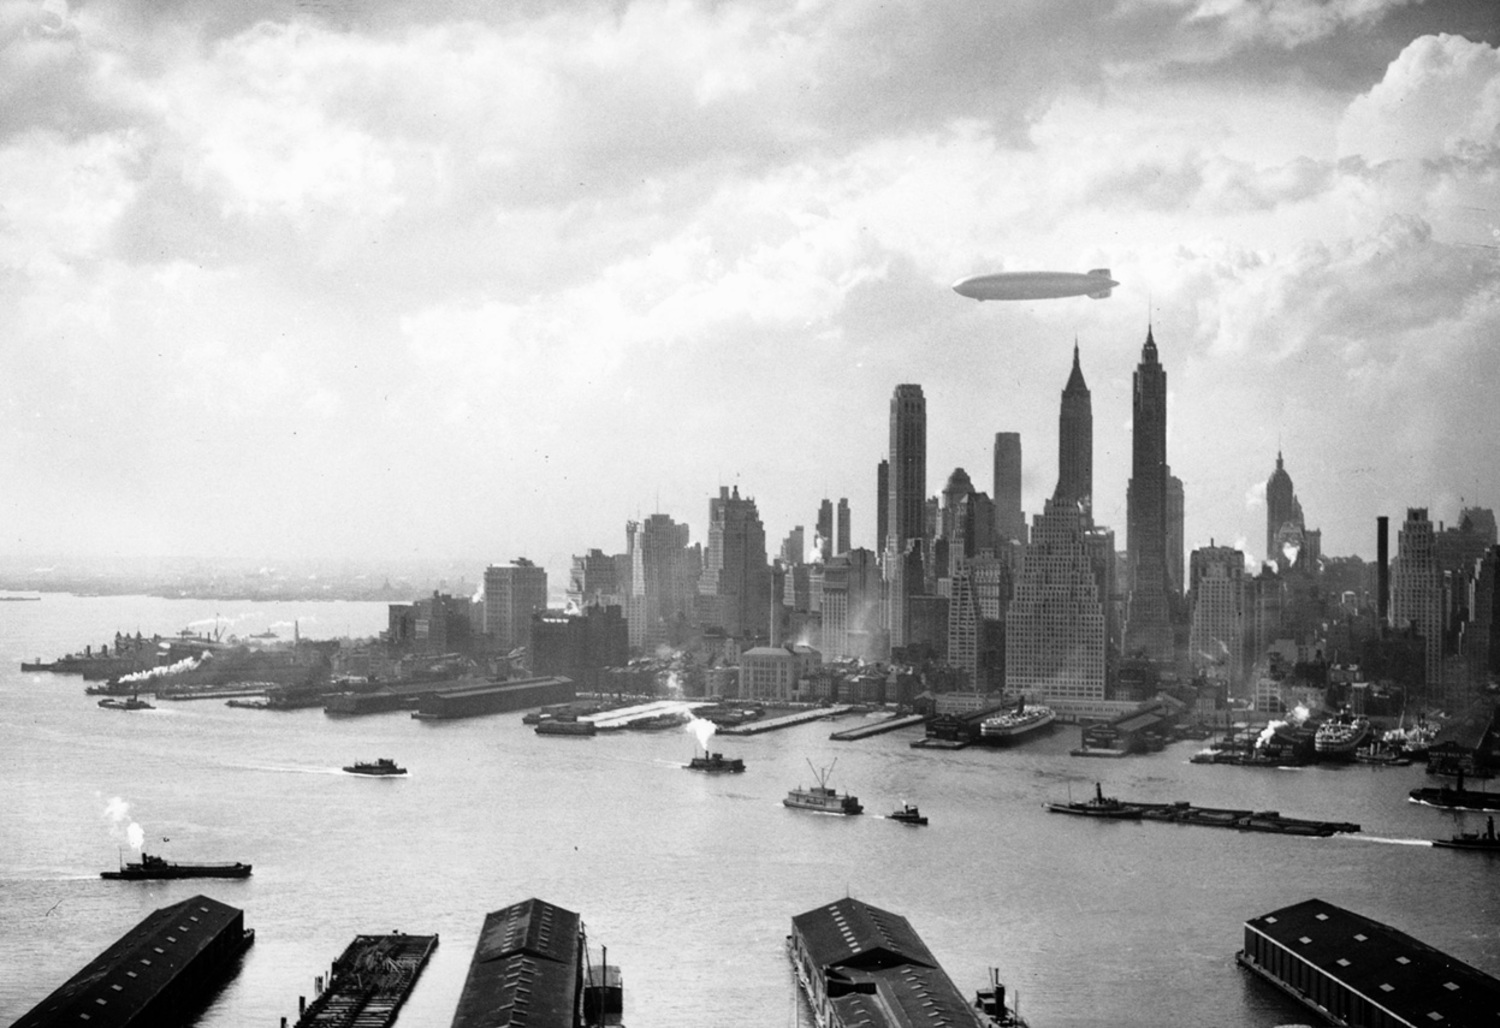 The Hindenburg floats over Manhattan Island in New York City on May 6, 1937, just hours from disaster in nearby New Jersey.